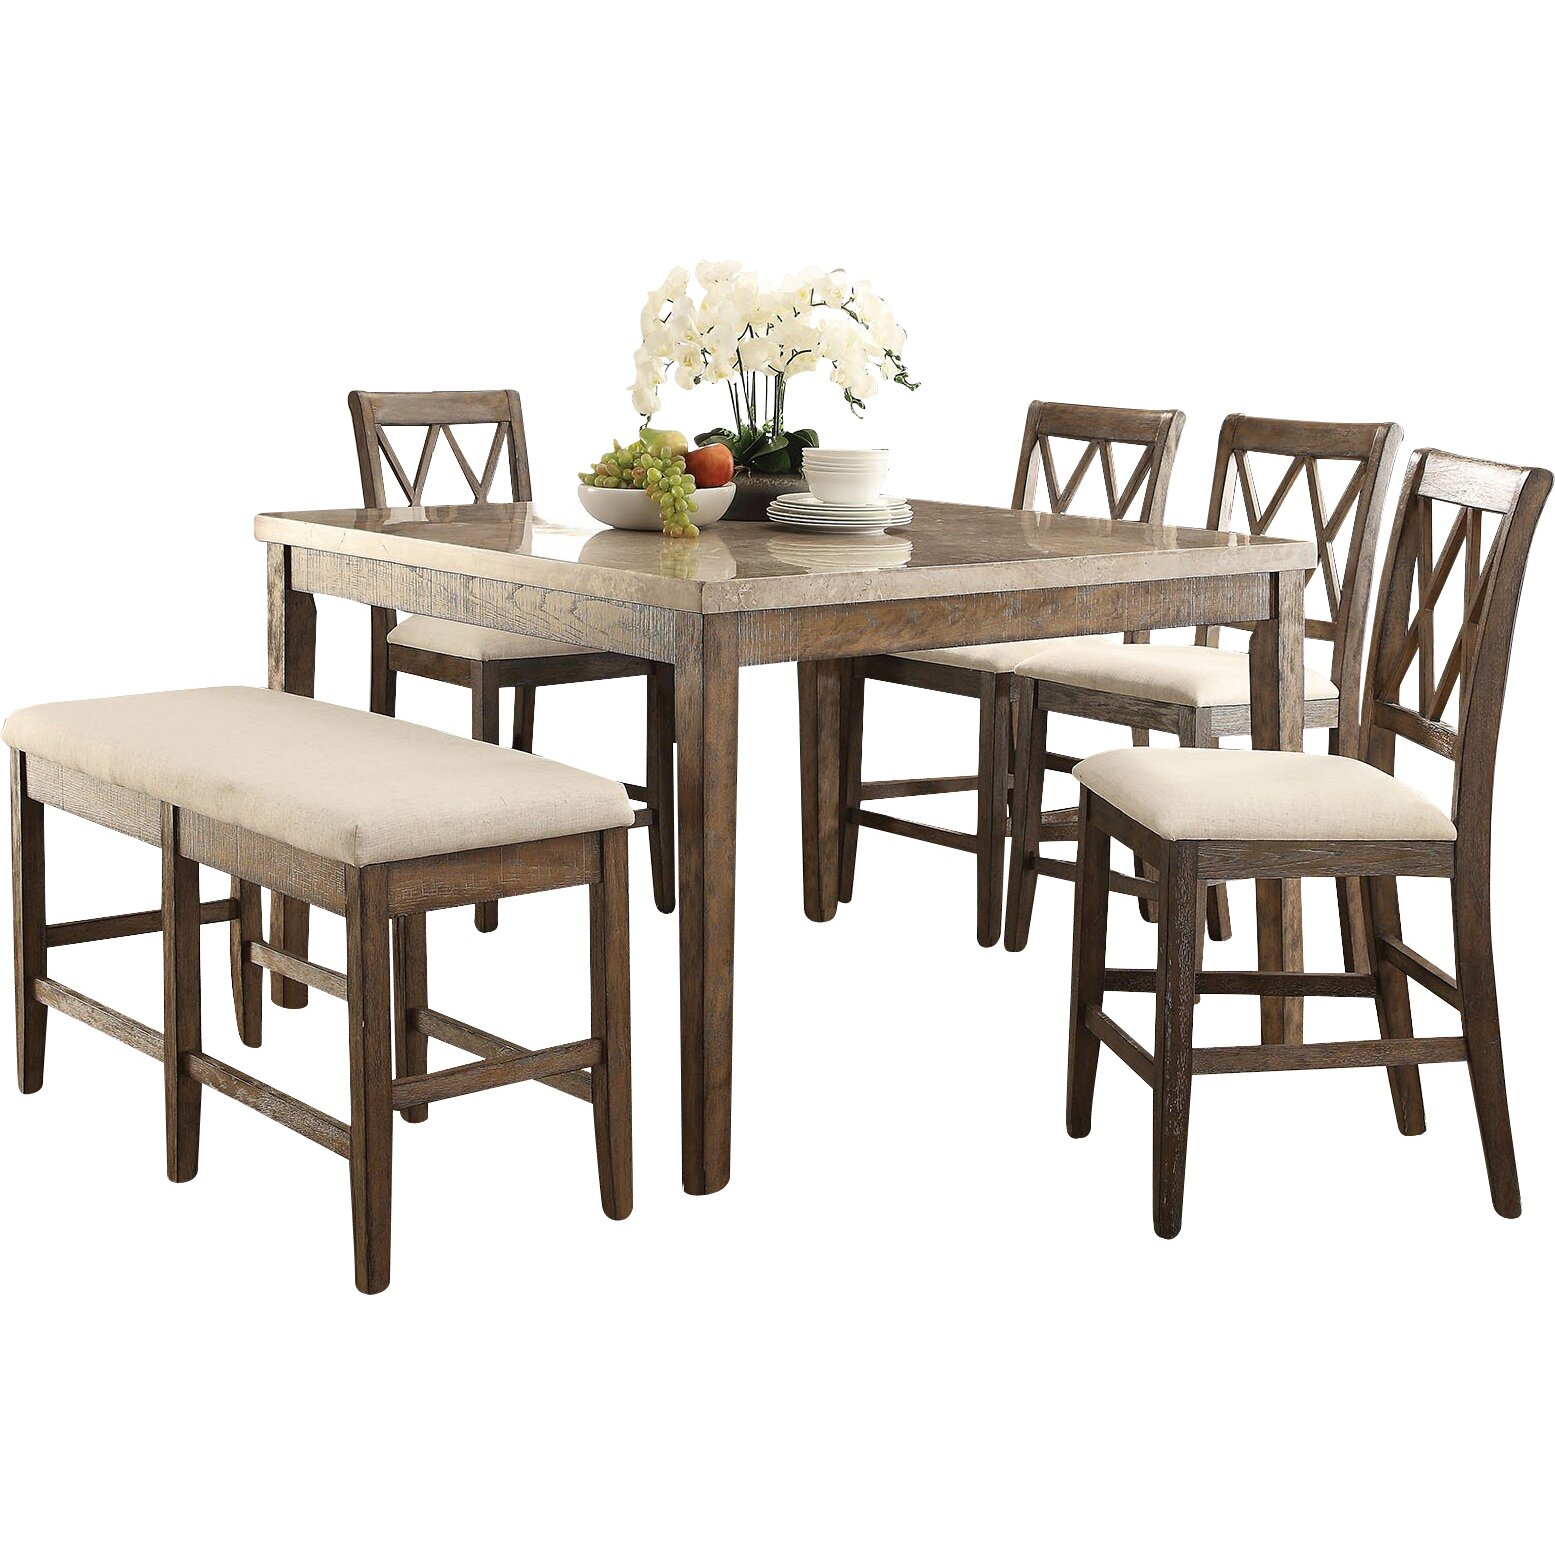 6pc Albury Dining Set With Bench Dining Set 6 Piece. Iranbourse.co. Full resolution  portrait, nominally Width 1555 Height 1555 pixels, portrait with #995E32.